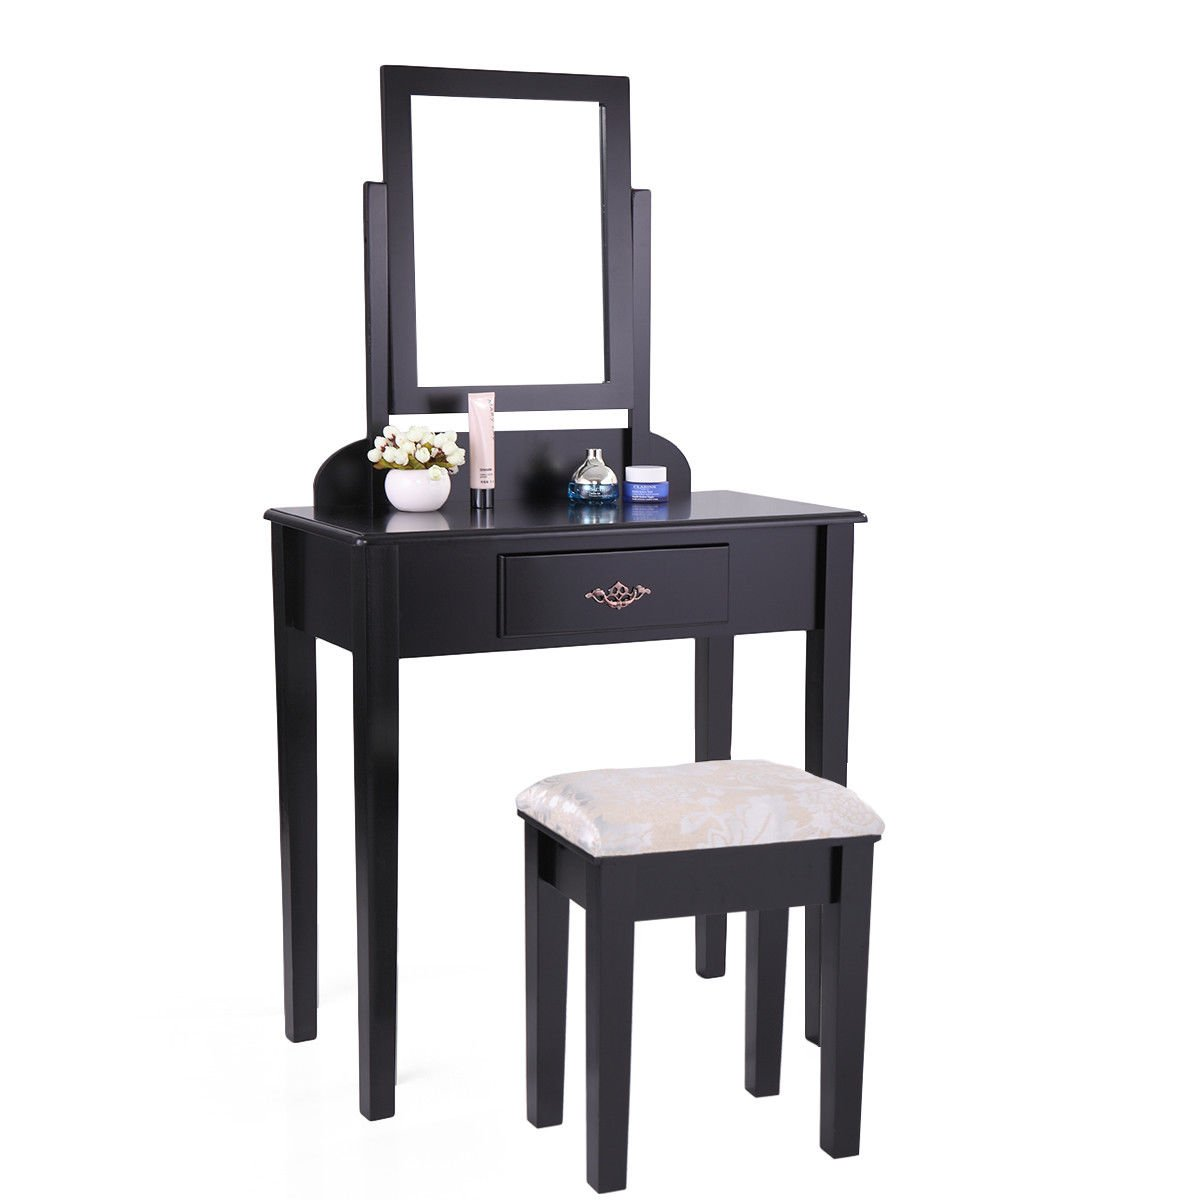 Tobbi Contemporary Dressing Mirror Table Set with Stool Bedroom Vanity  Table Black Finish